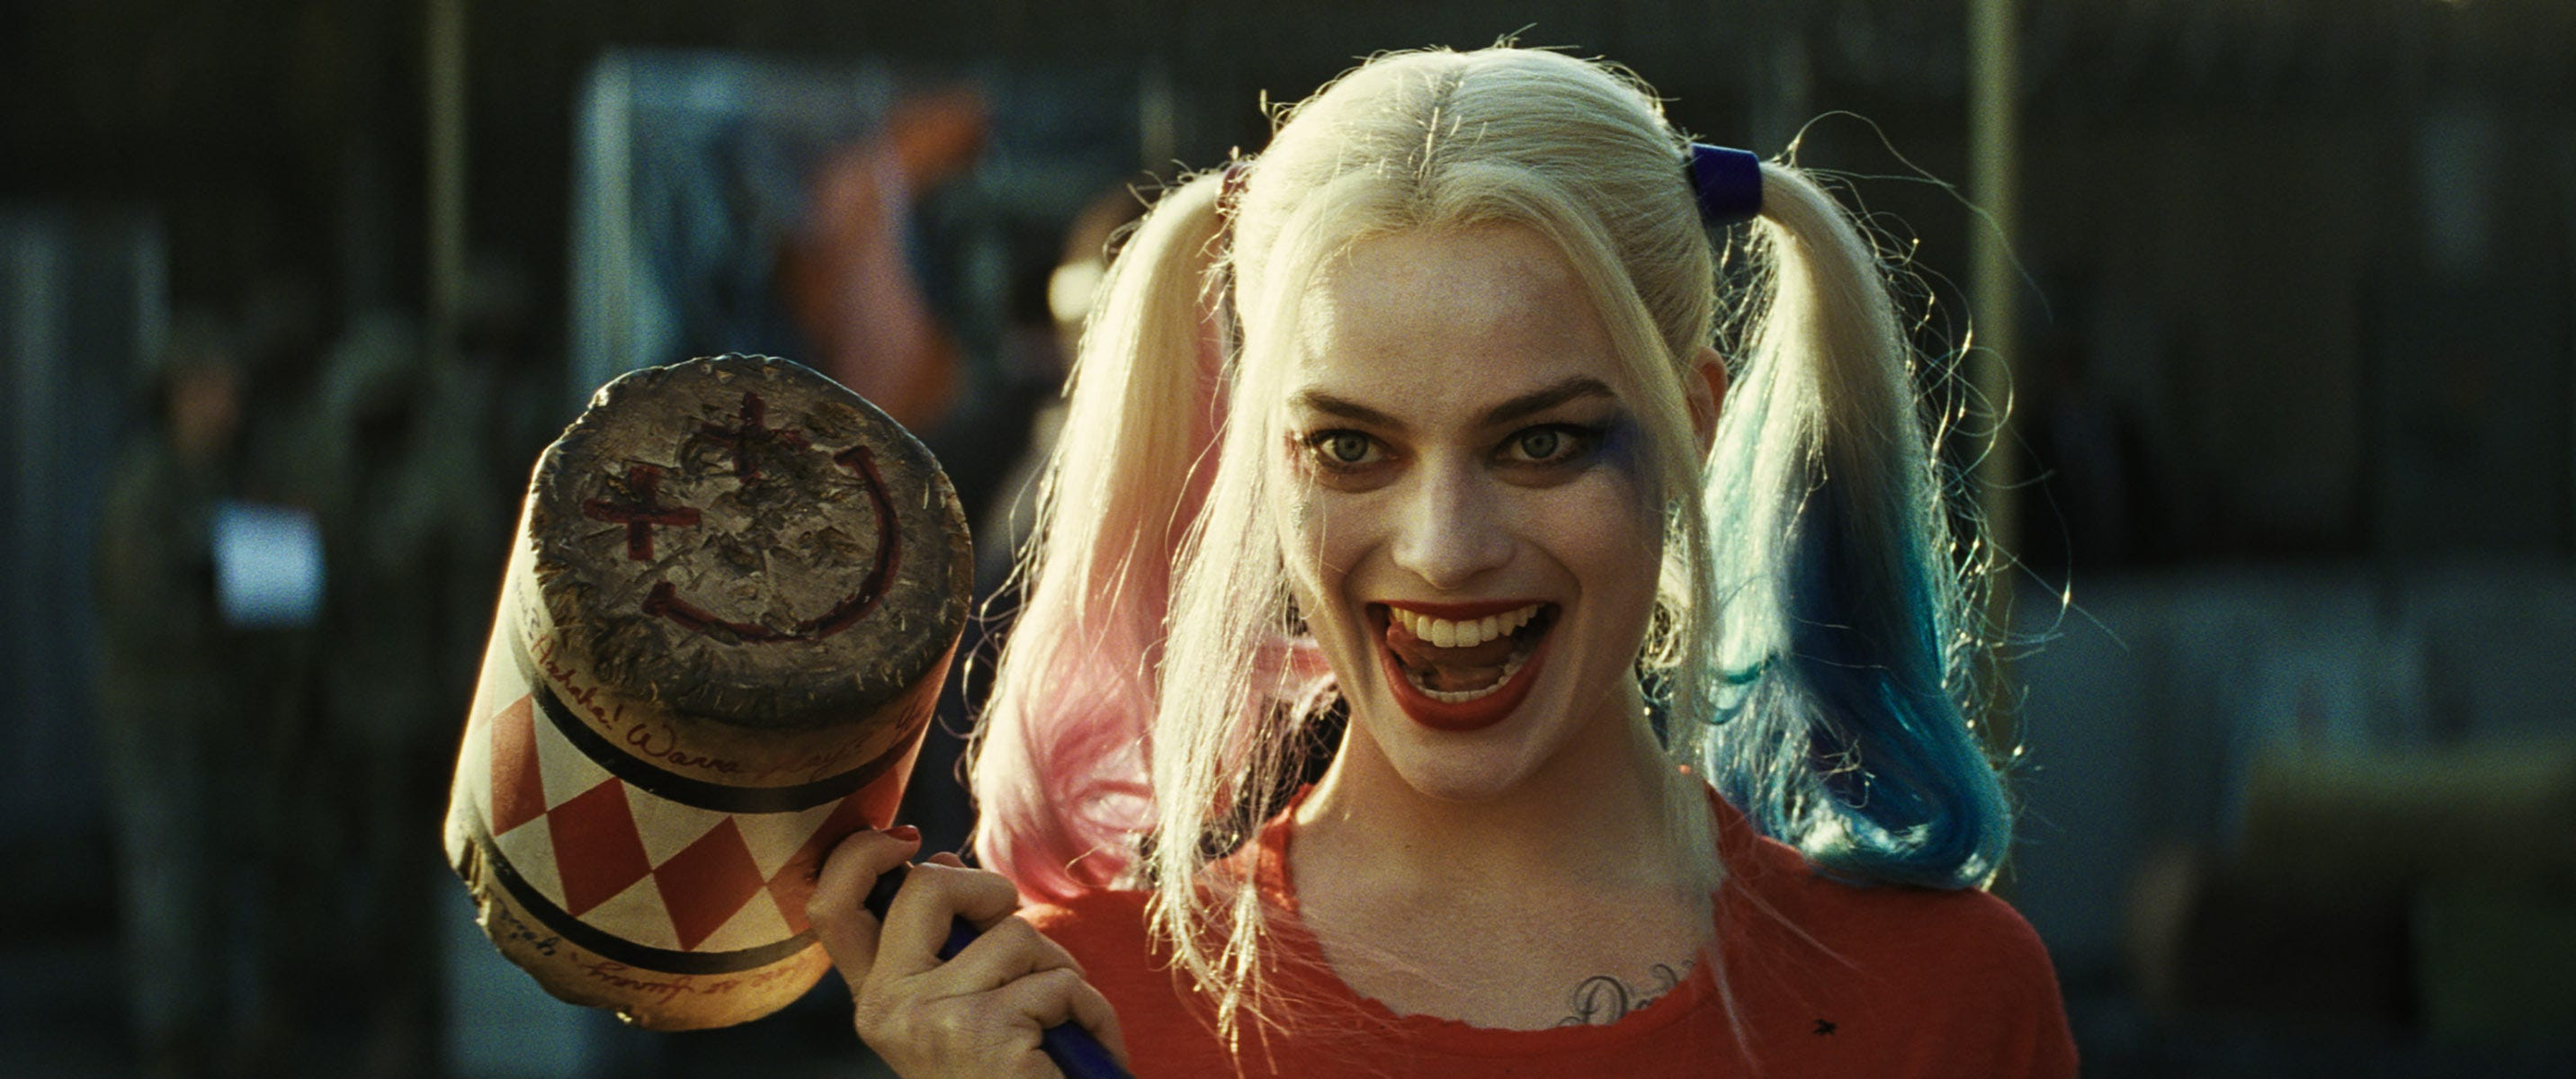 James Gunn debuts first look at  The Suicide Squad,  loves Margot Robbie s Harley Quinn at DC FanDome